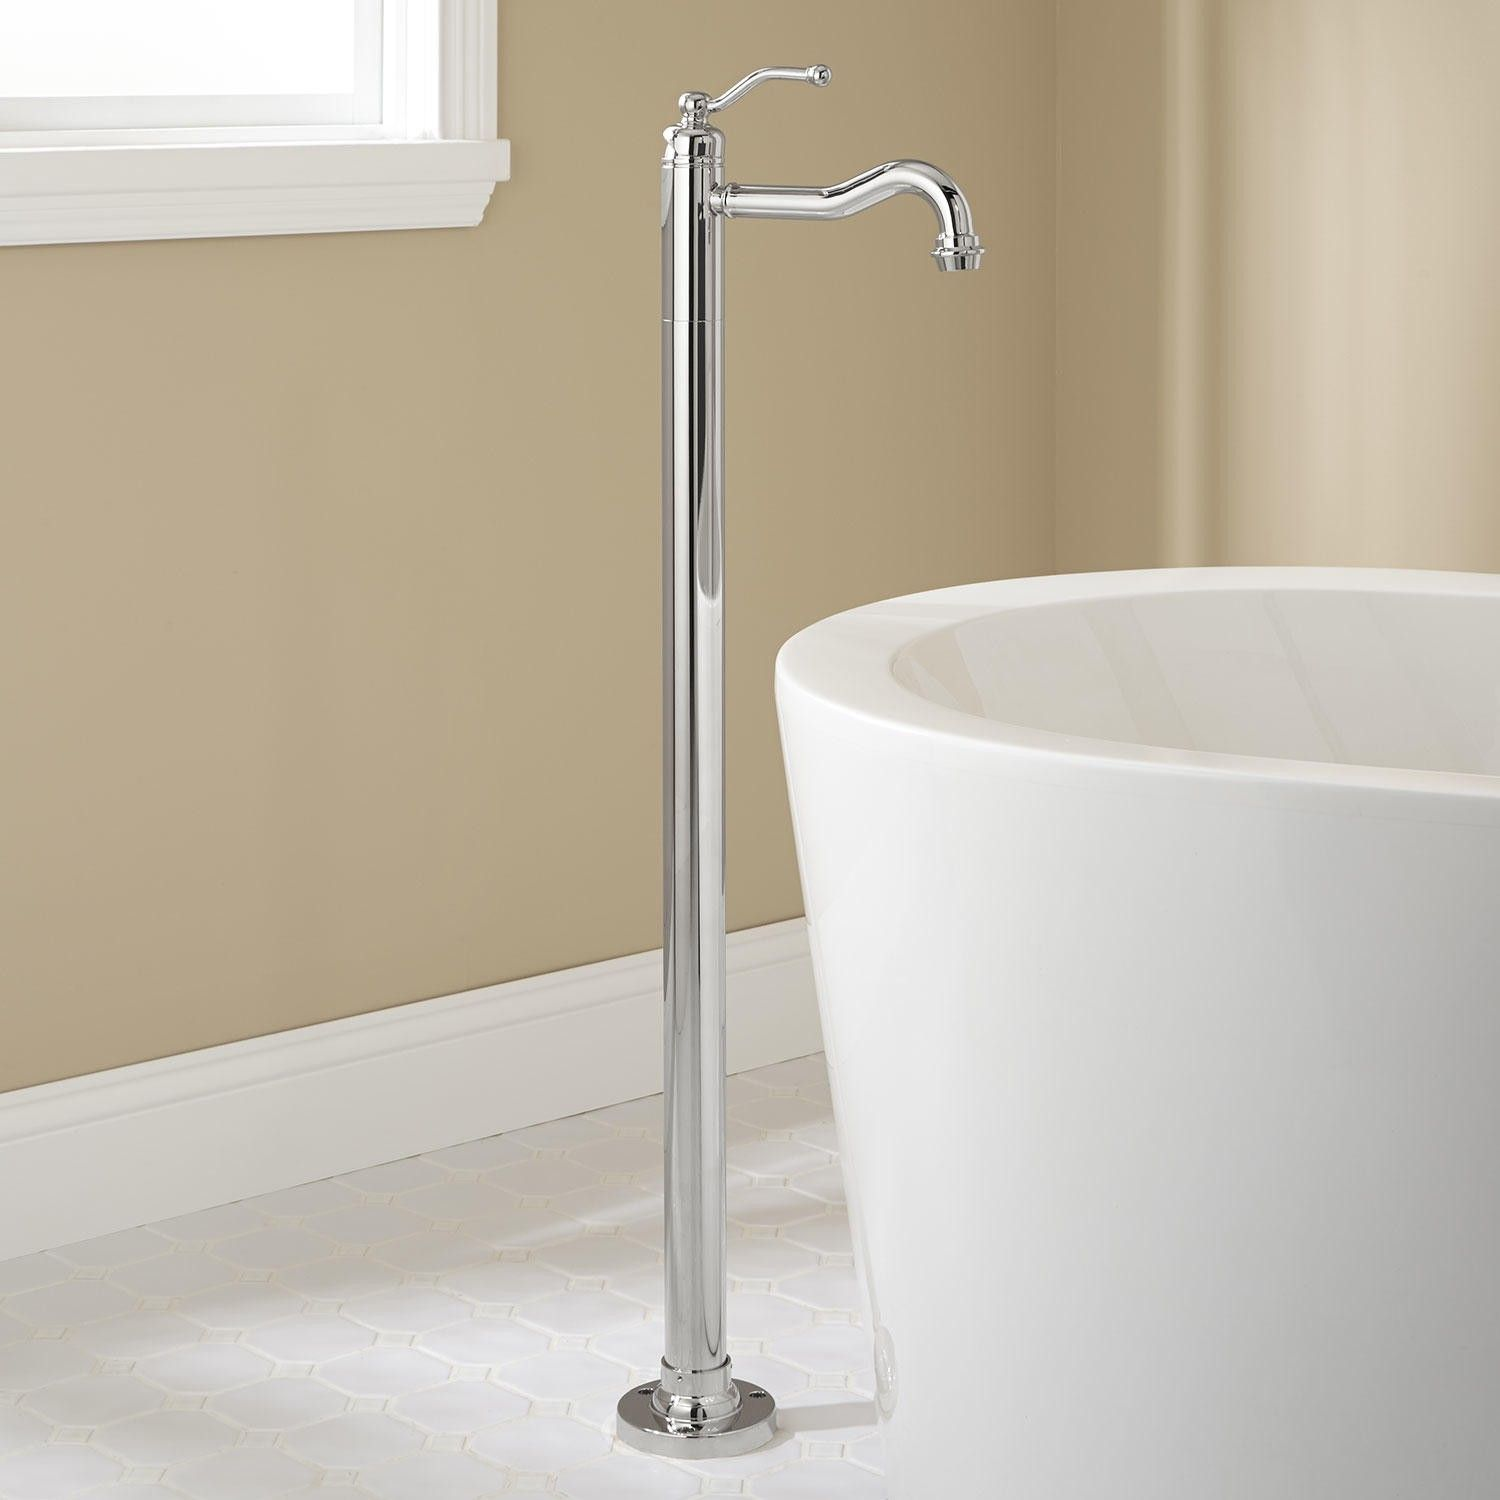 Leta Freestanding Tub Faucet | Freestanding tub, Faucet and Tubs